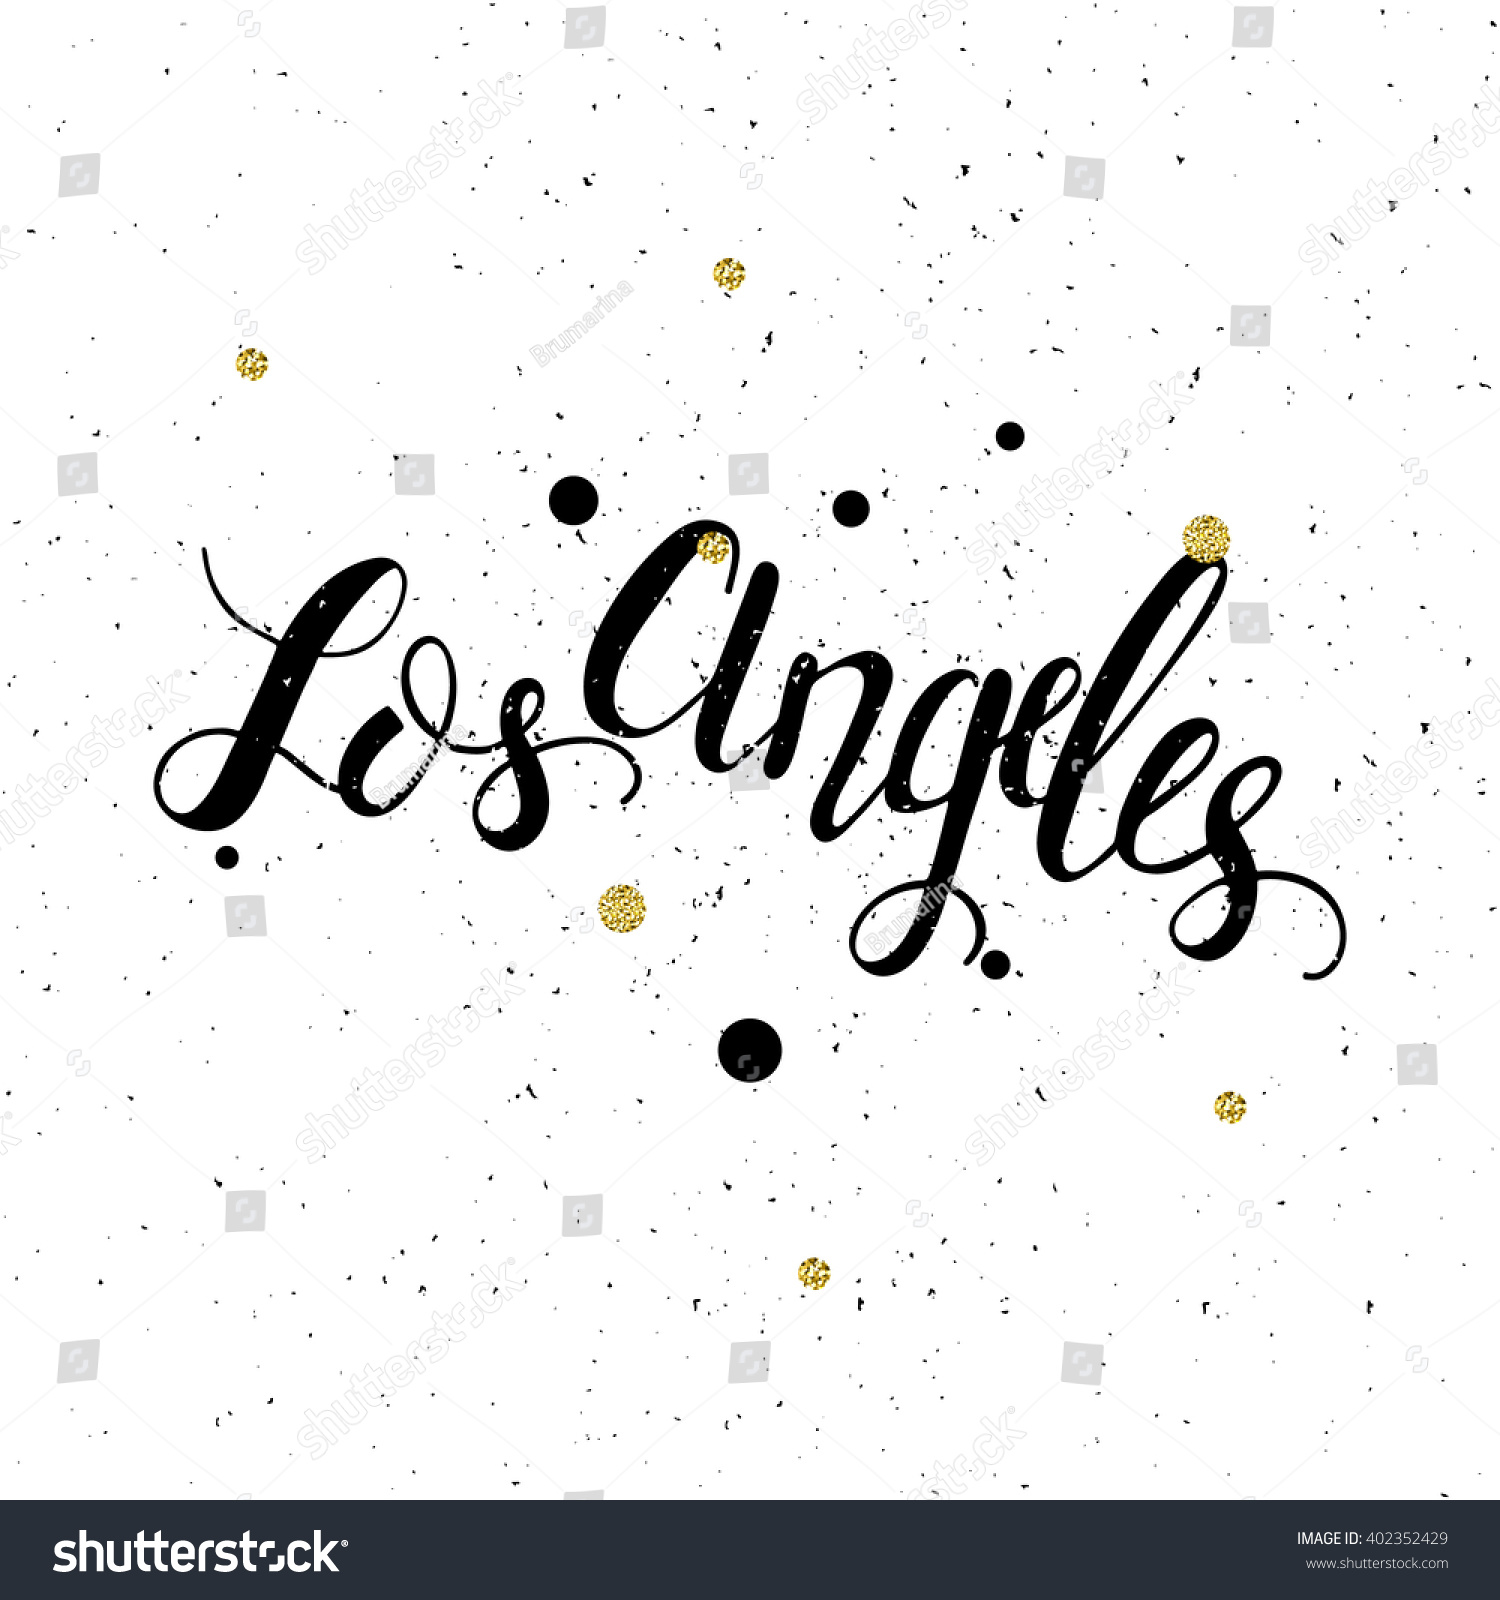 Design t shirts los angeles - Conceptual Handdrawn Phrase Los Angeles Handdrawn Tee Graphic Lettering Design For Posters T